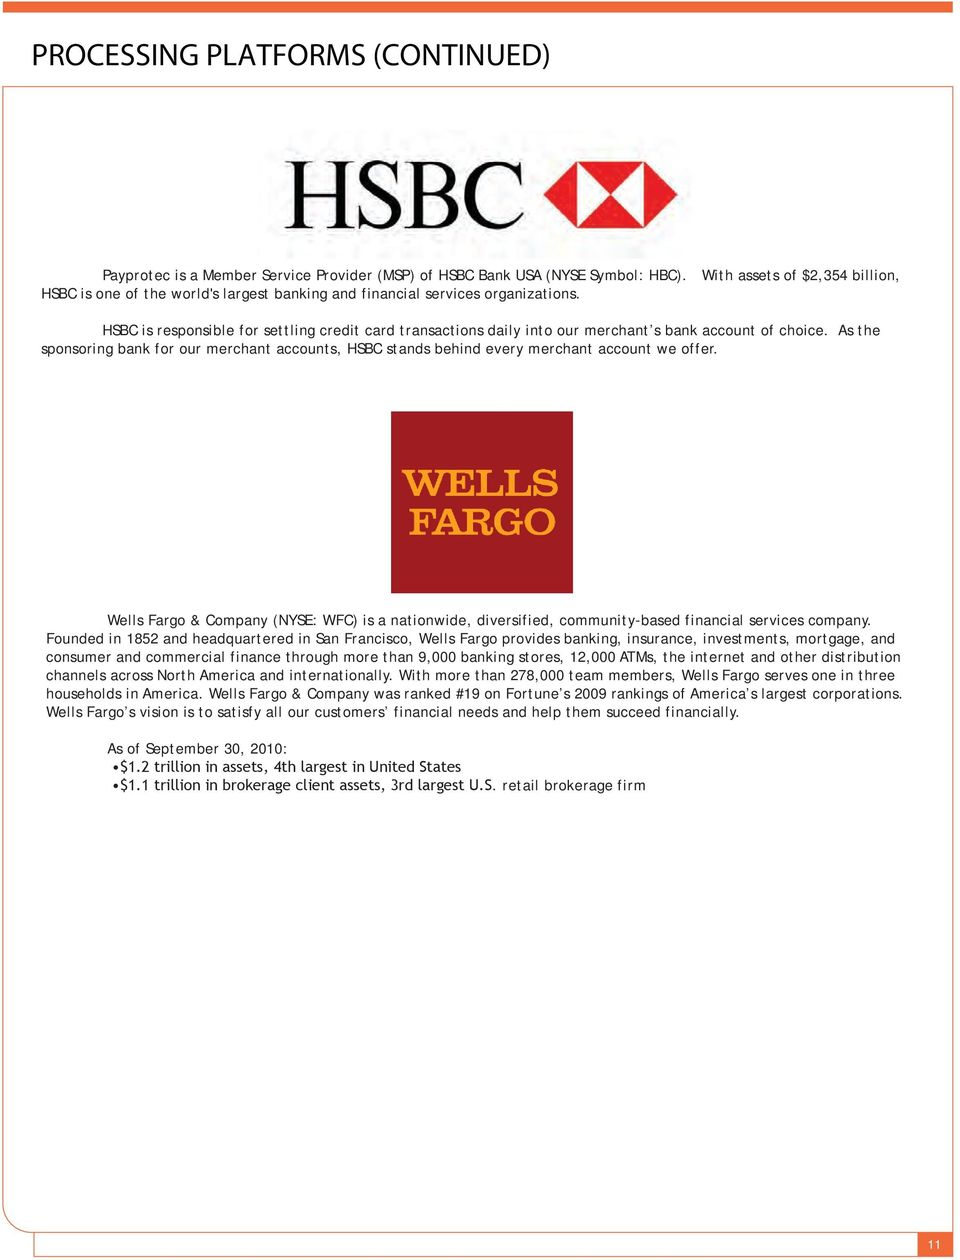 HSBC is responsible for settling credit card transactions daily into our merchant s bank account of choice.